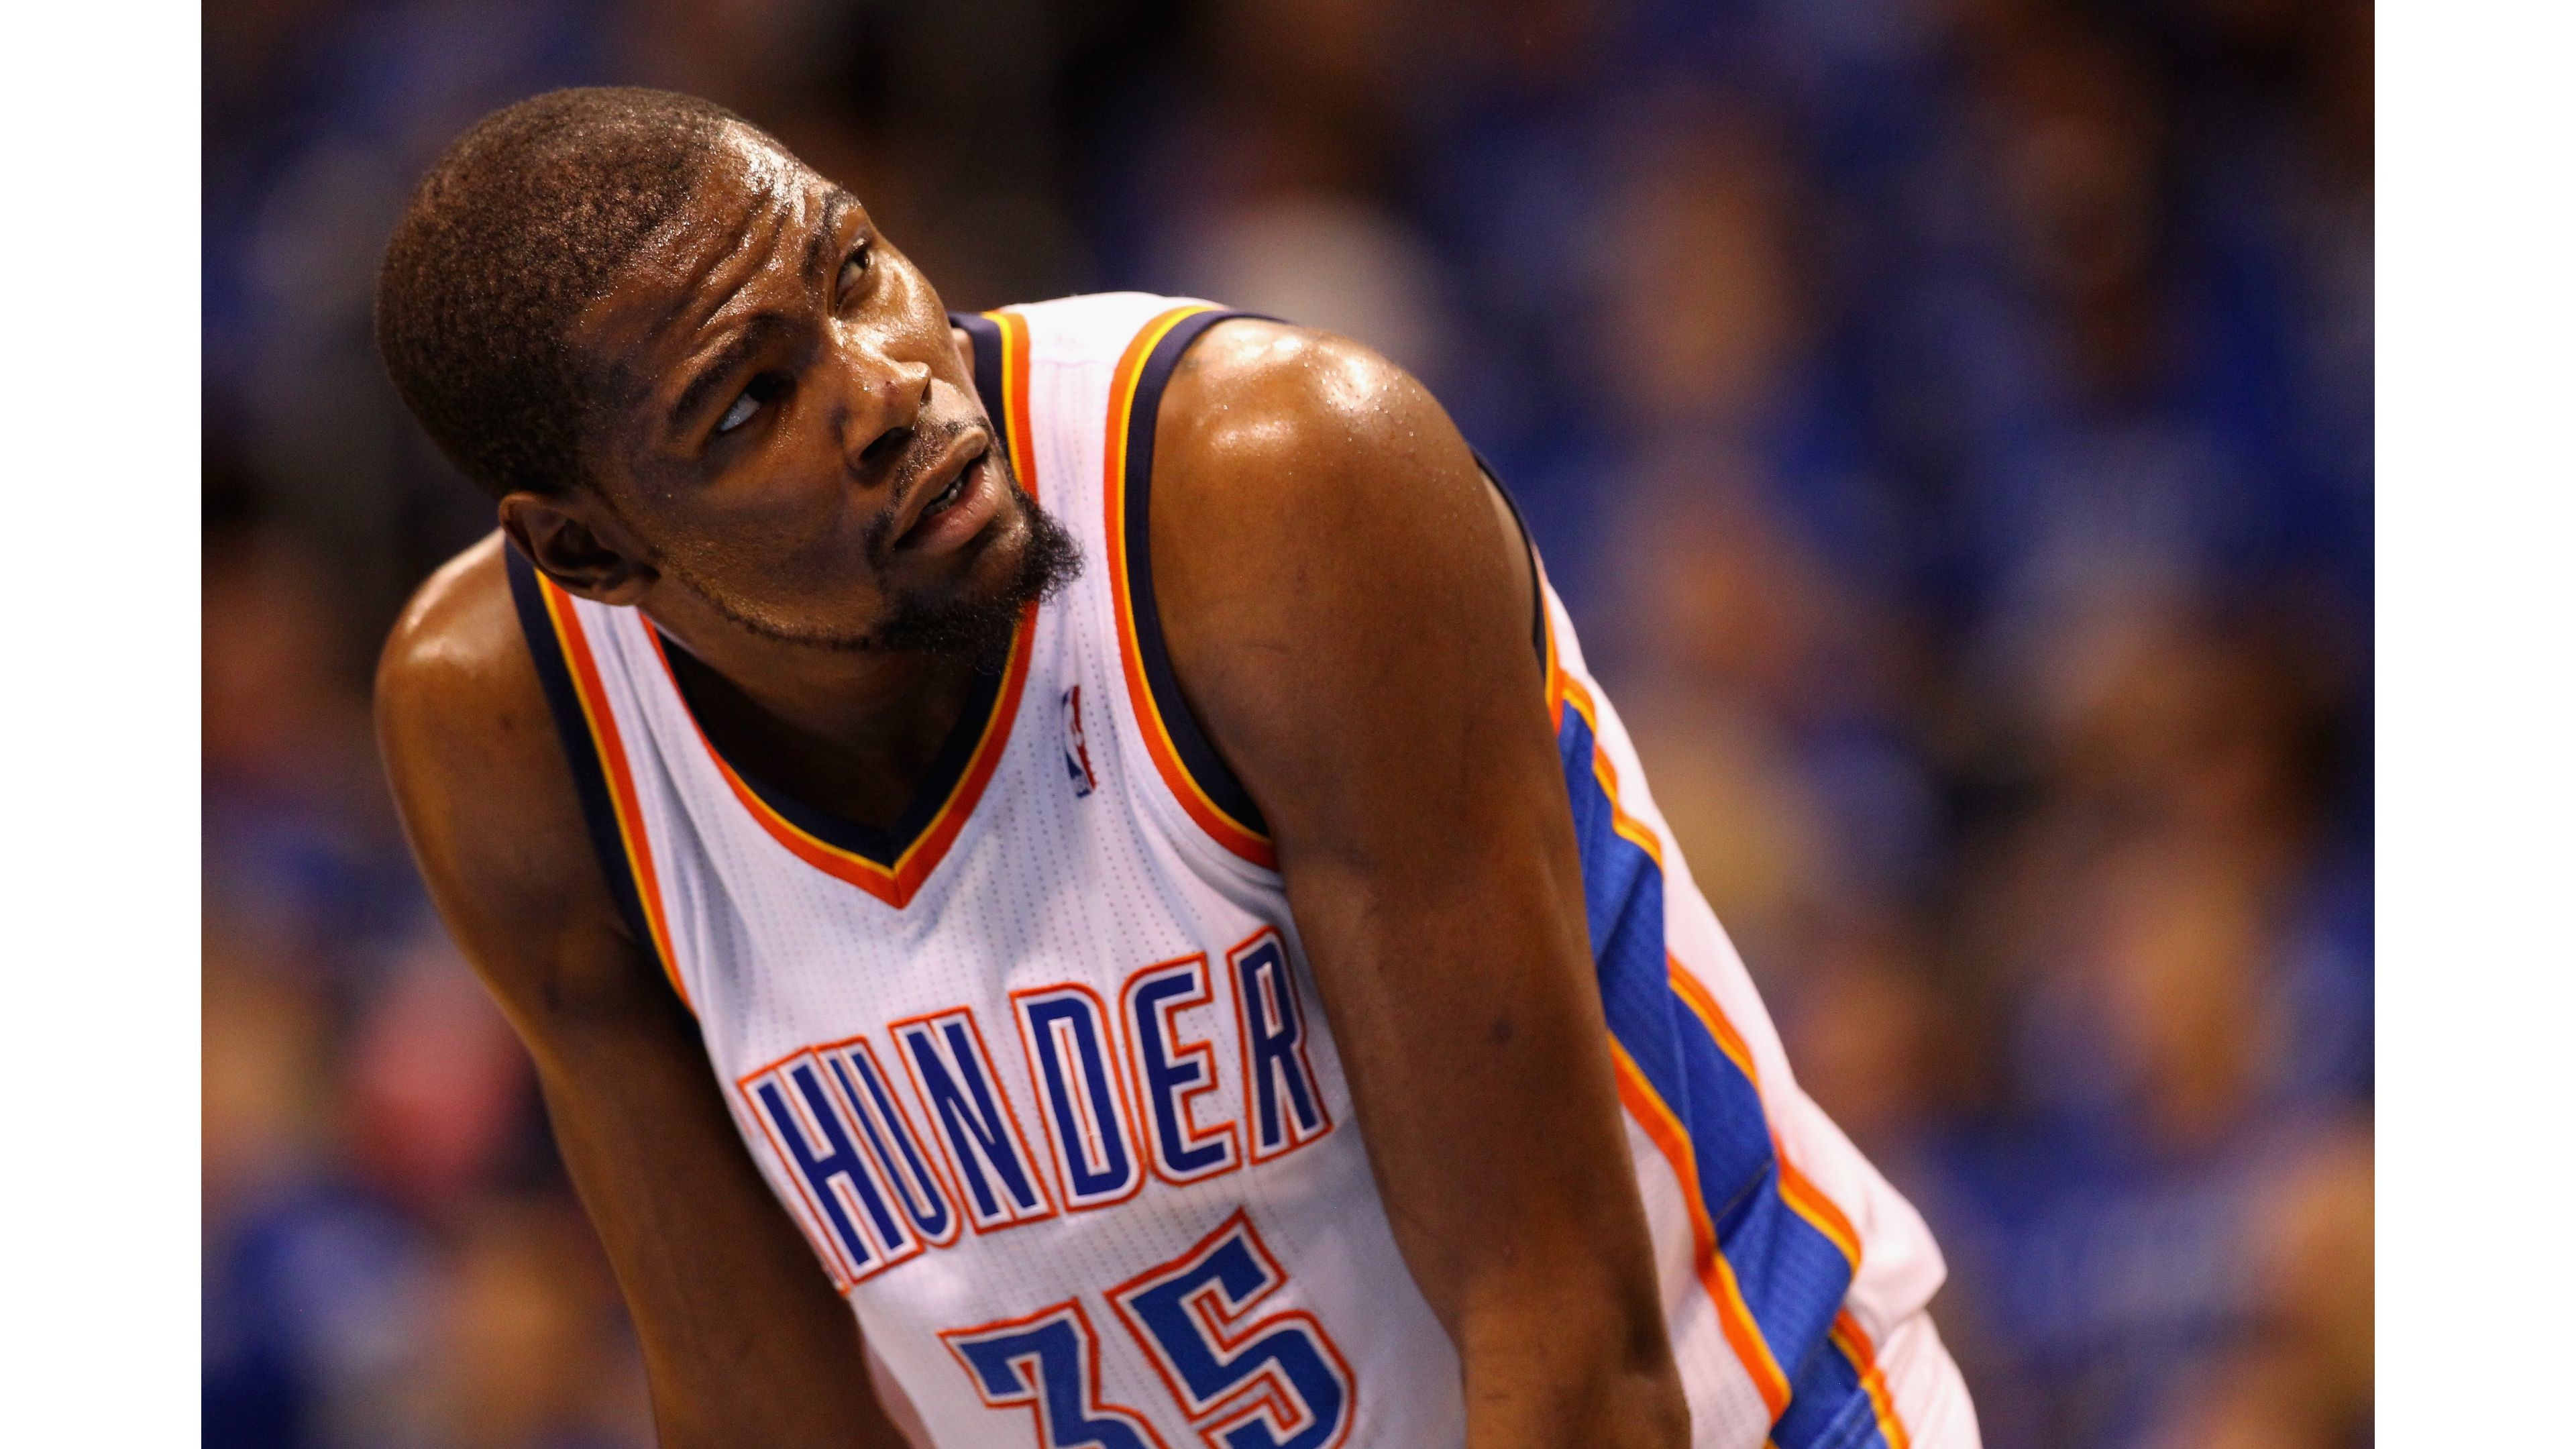 Kevin Durant Wallpaper (85+ pictures)